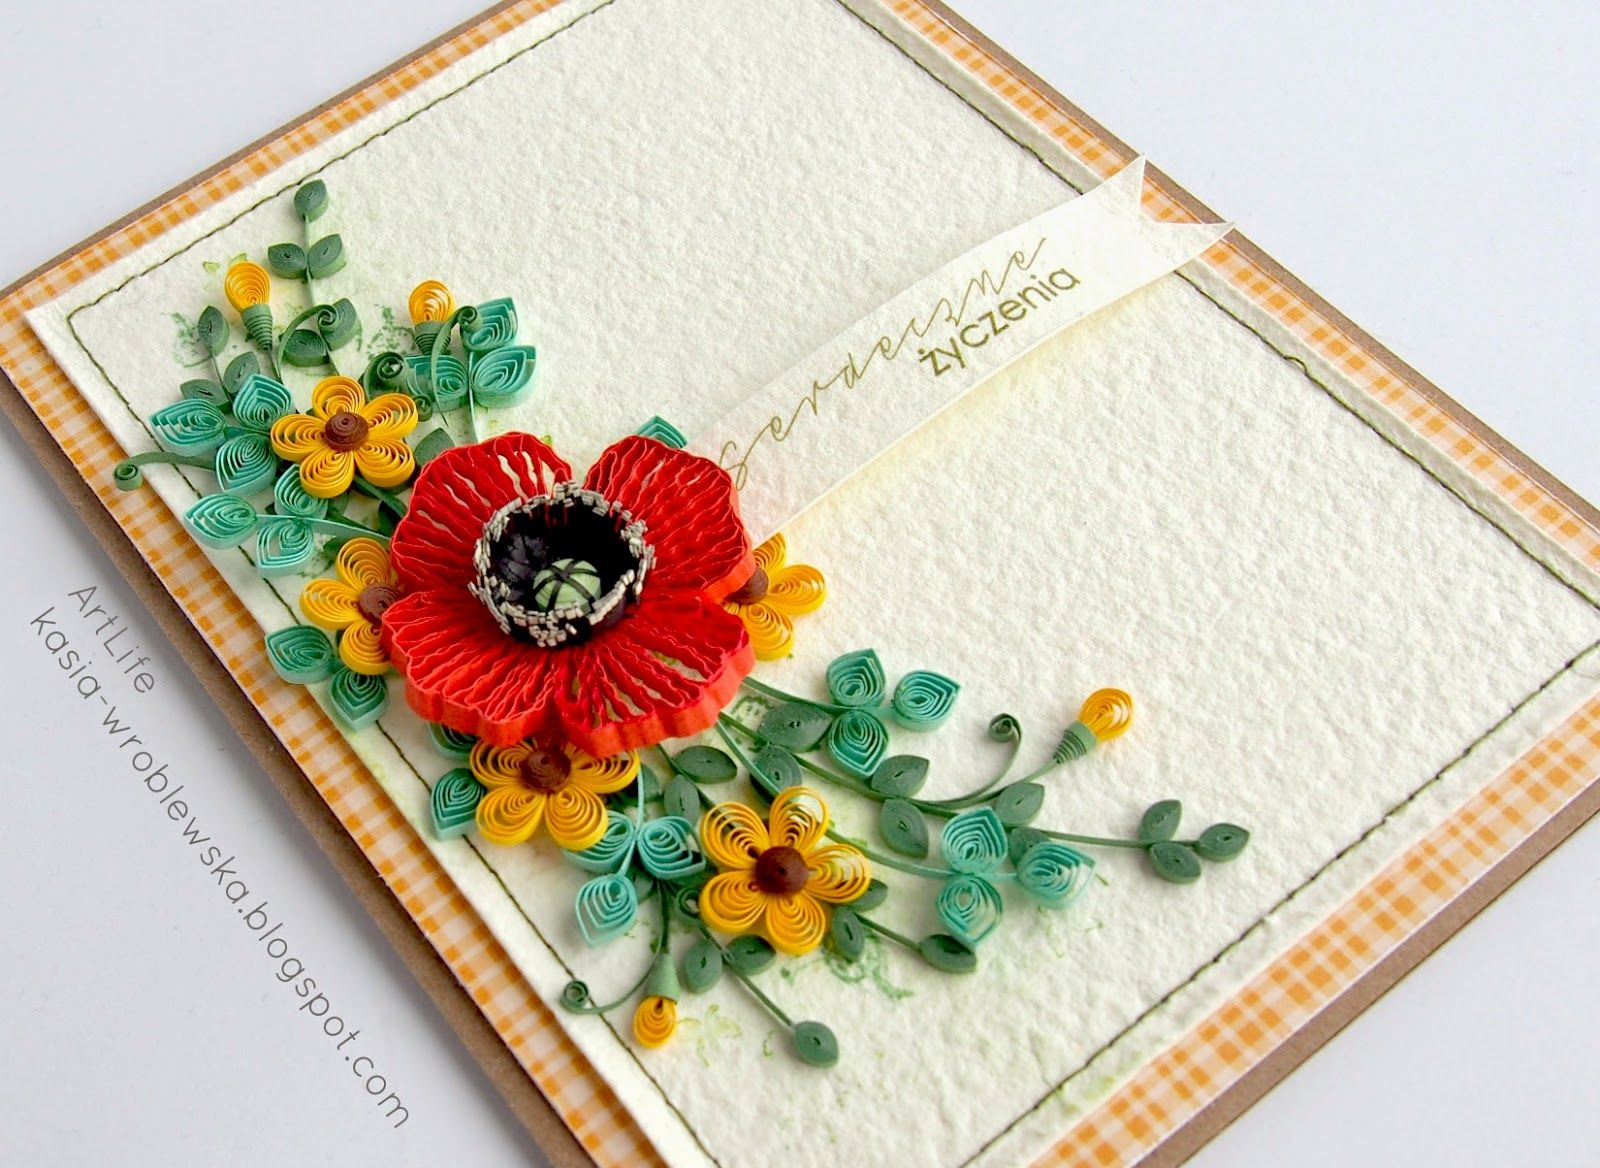 Pin By Cynthia D On Quilling Cards Pinterest Quilling Cards